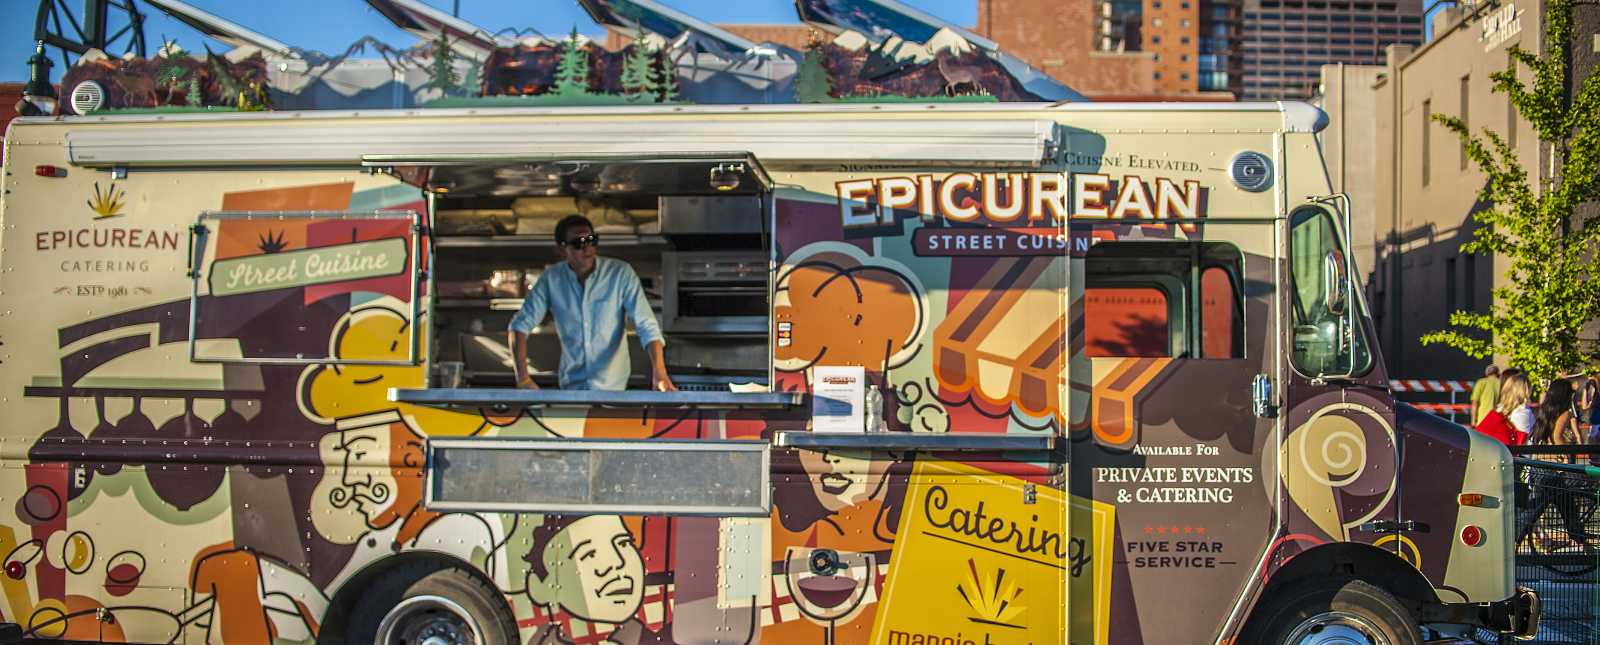 epicurean-food-truck-downtown-denver